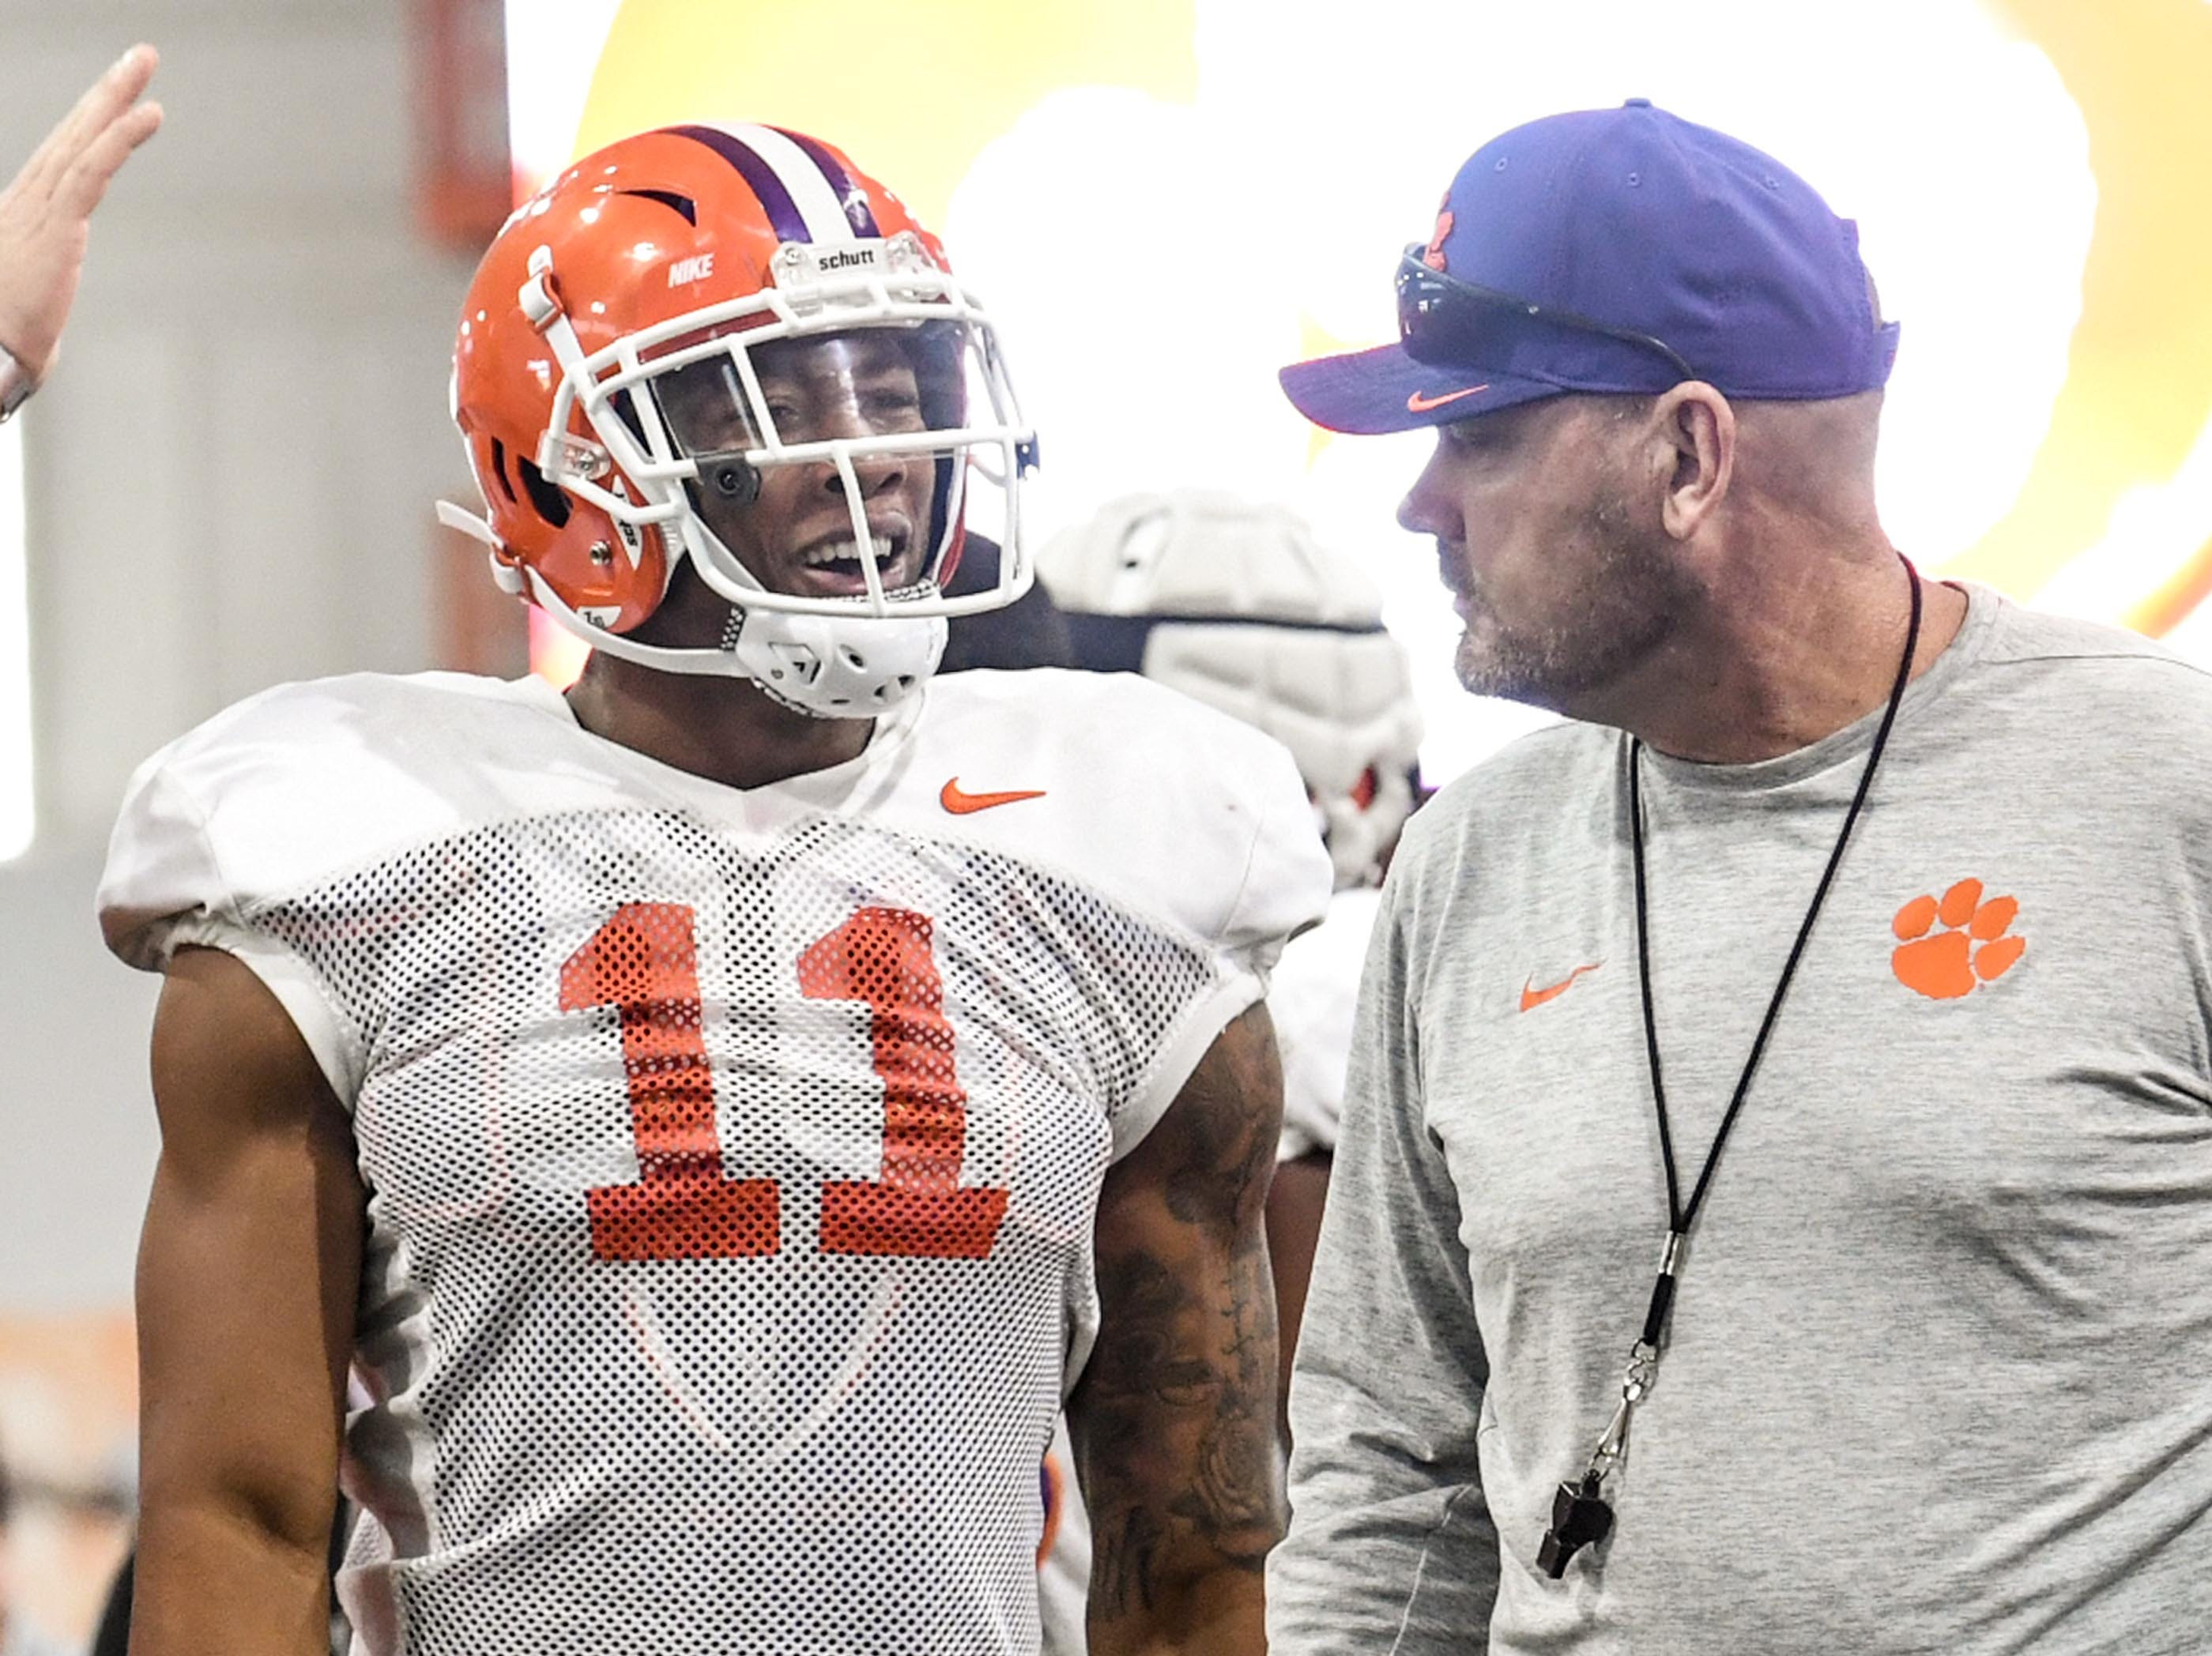 Clemson safety Isaiah Simmons (11) talks with Clemson assistant head coach coach Danny Pearman during fall practice in Clemson on Wednesday.